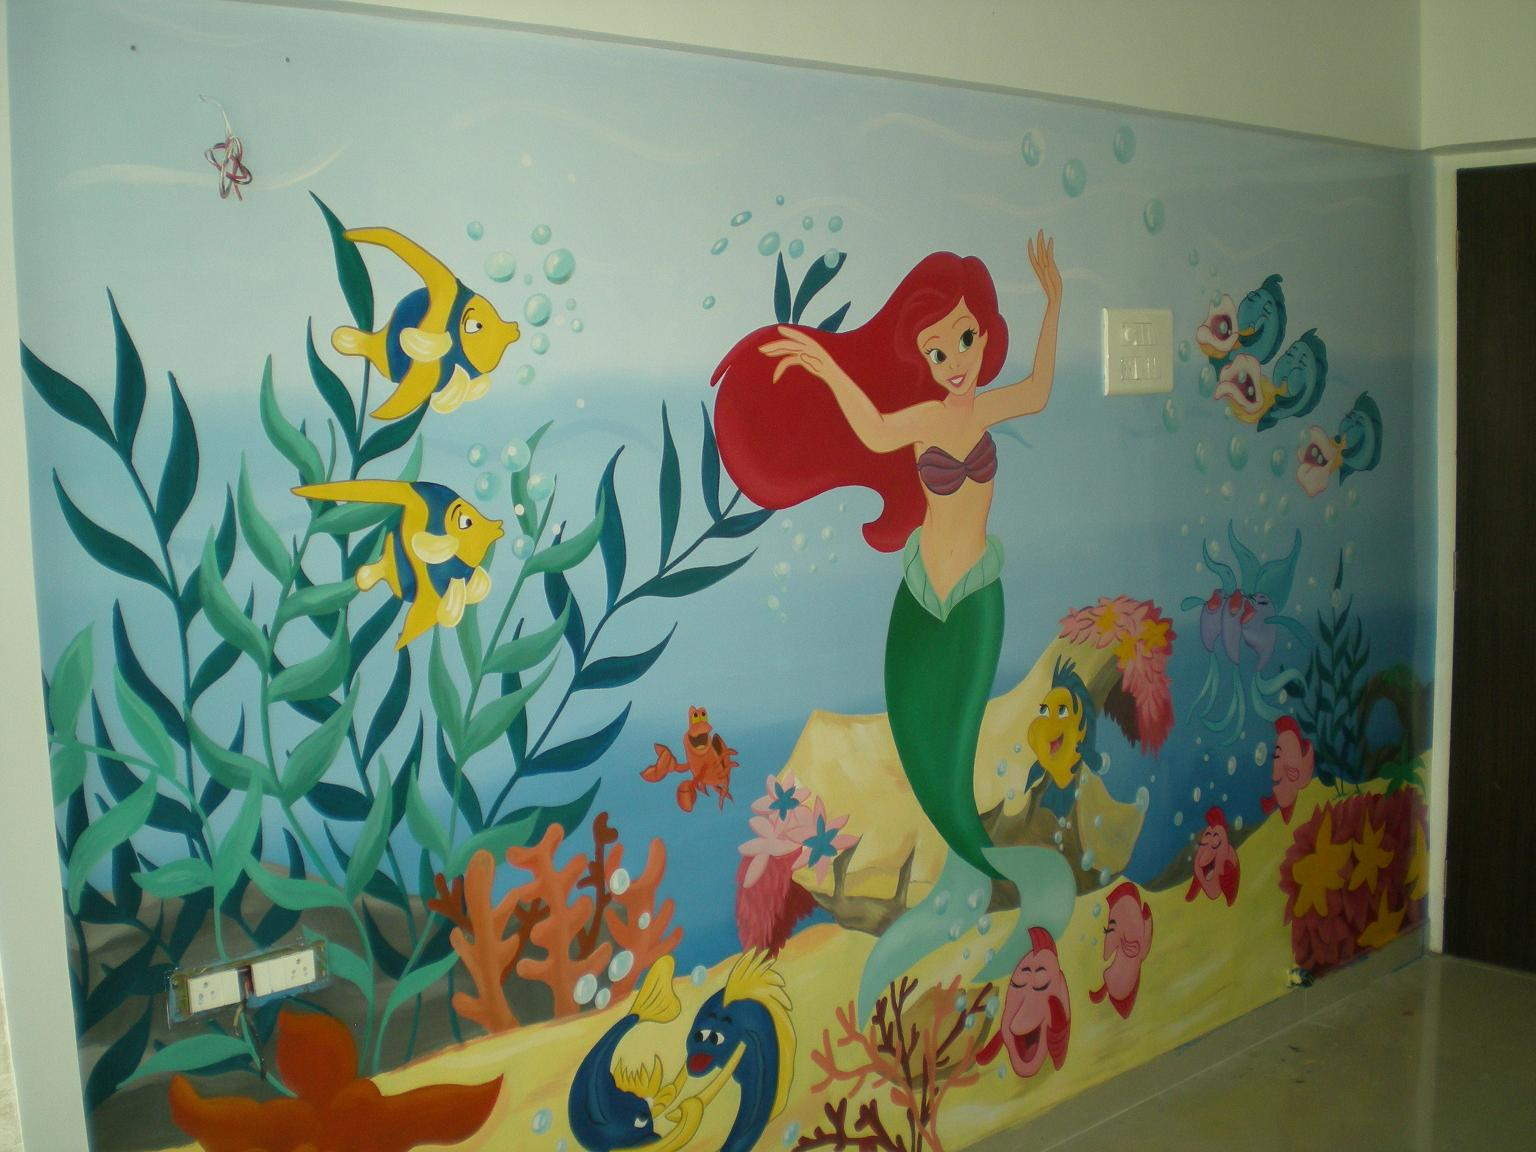 Wall Art For Play School : Play school classroom wall murals benglore kolkata